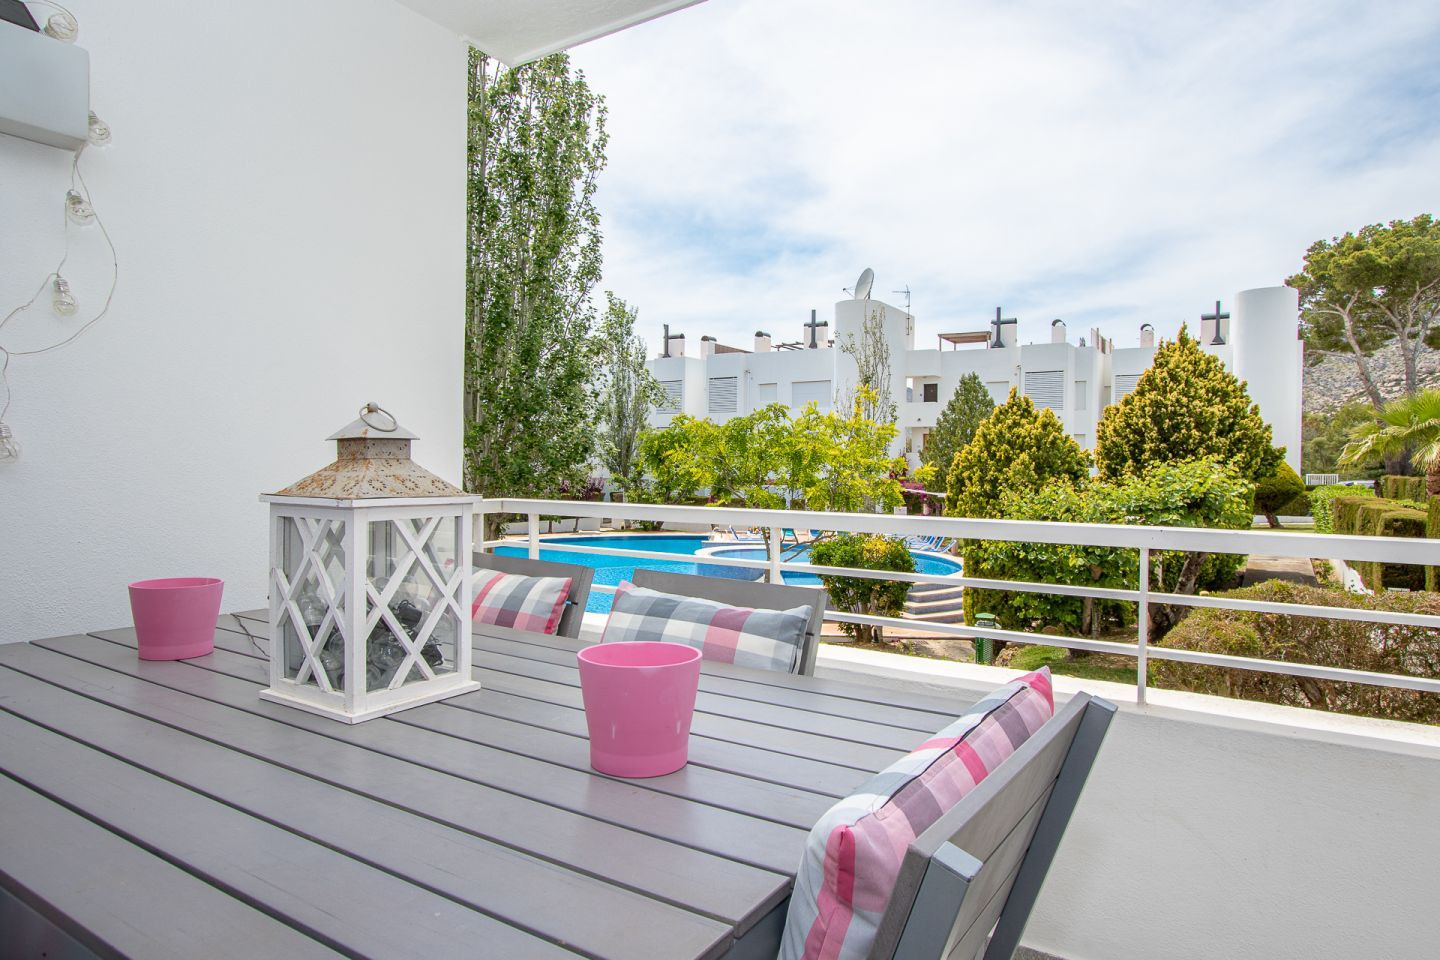 3 Bed Apartment for sale in Puerto Pollensa 16